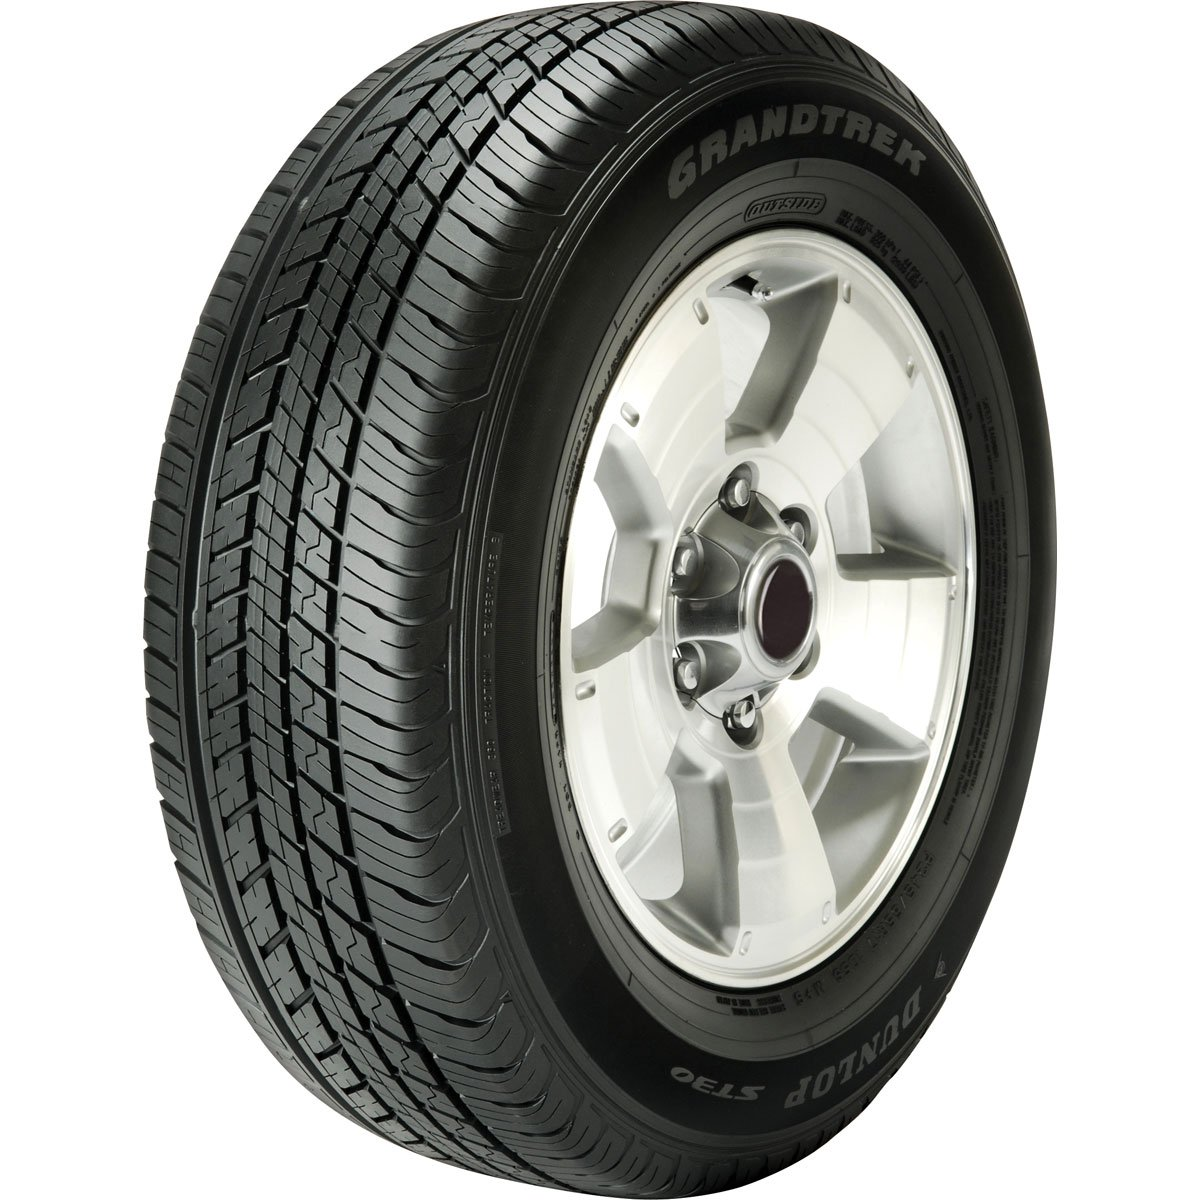 Dunlop Grandtrek ST 30  - 225/60/R18 100H - C/C/70 - Summer Tire (4x4) GOODYEAR DUNLOP TIRES OPERATIONS S.A. 4038526257079